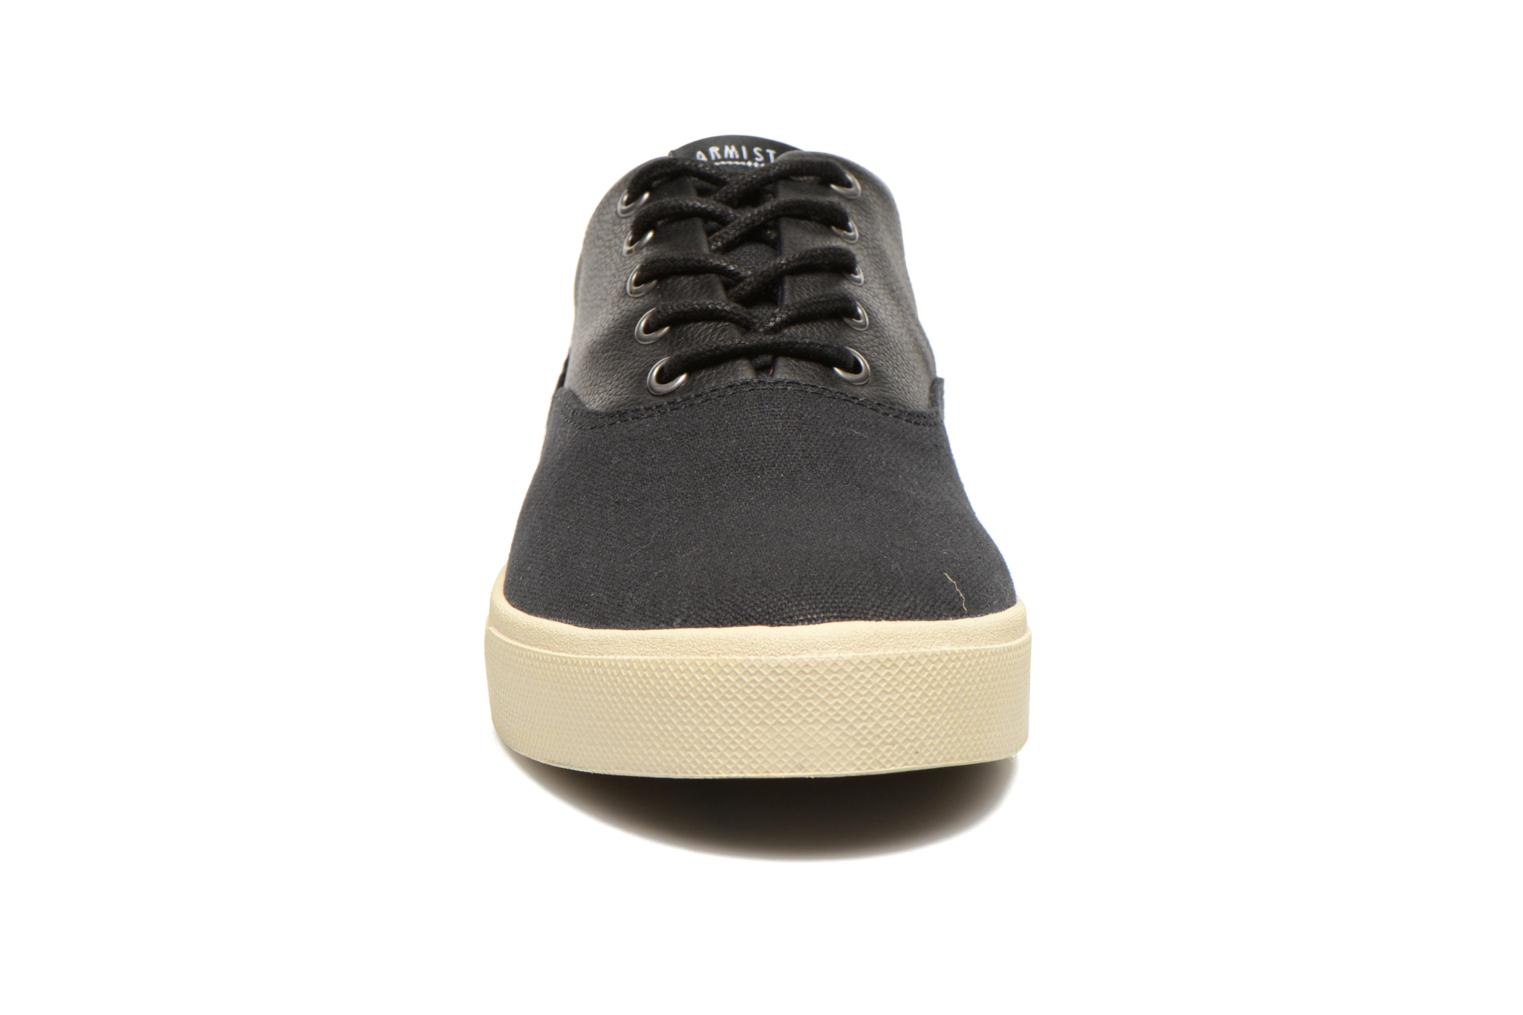 Baskets Armistice Hope Trainer Canvas/Leather Grain Noir vue portées chaussures